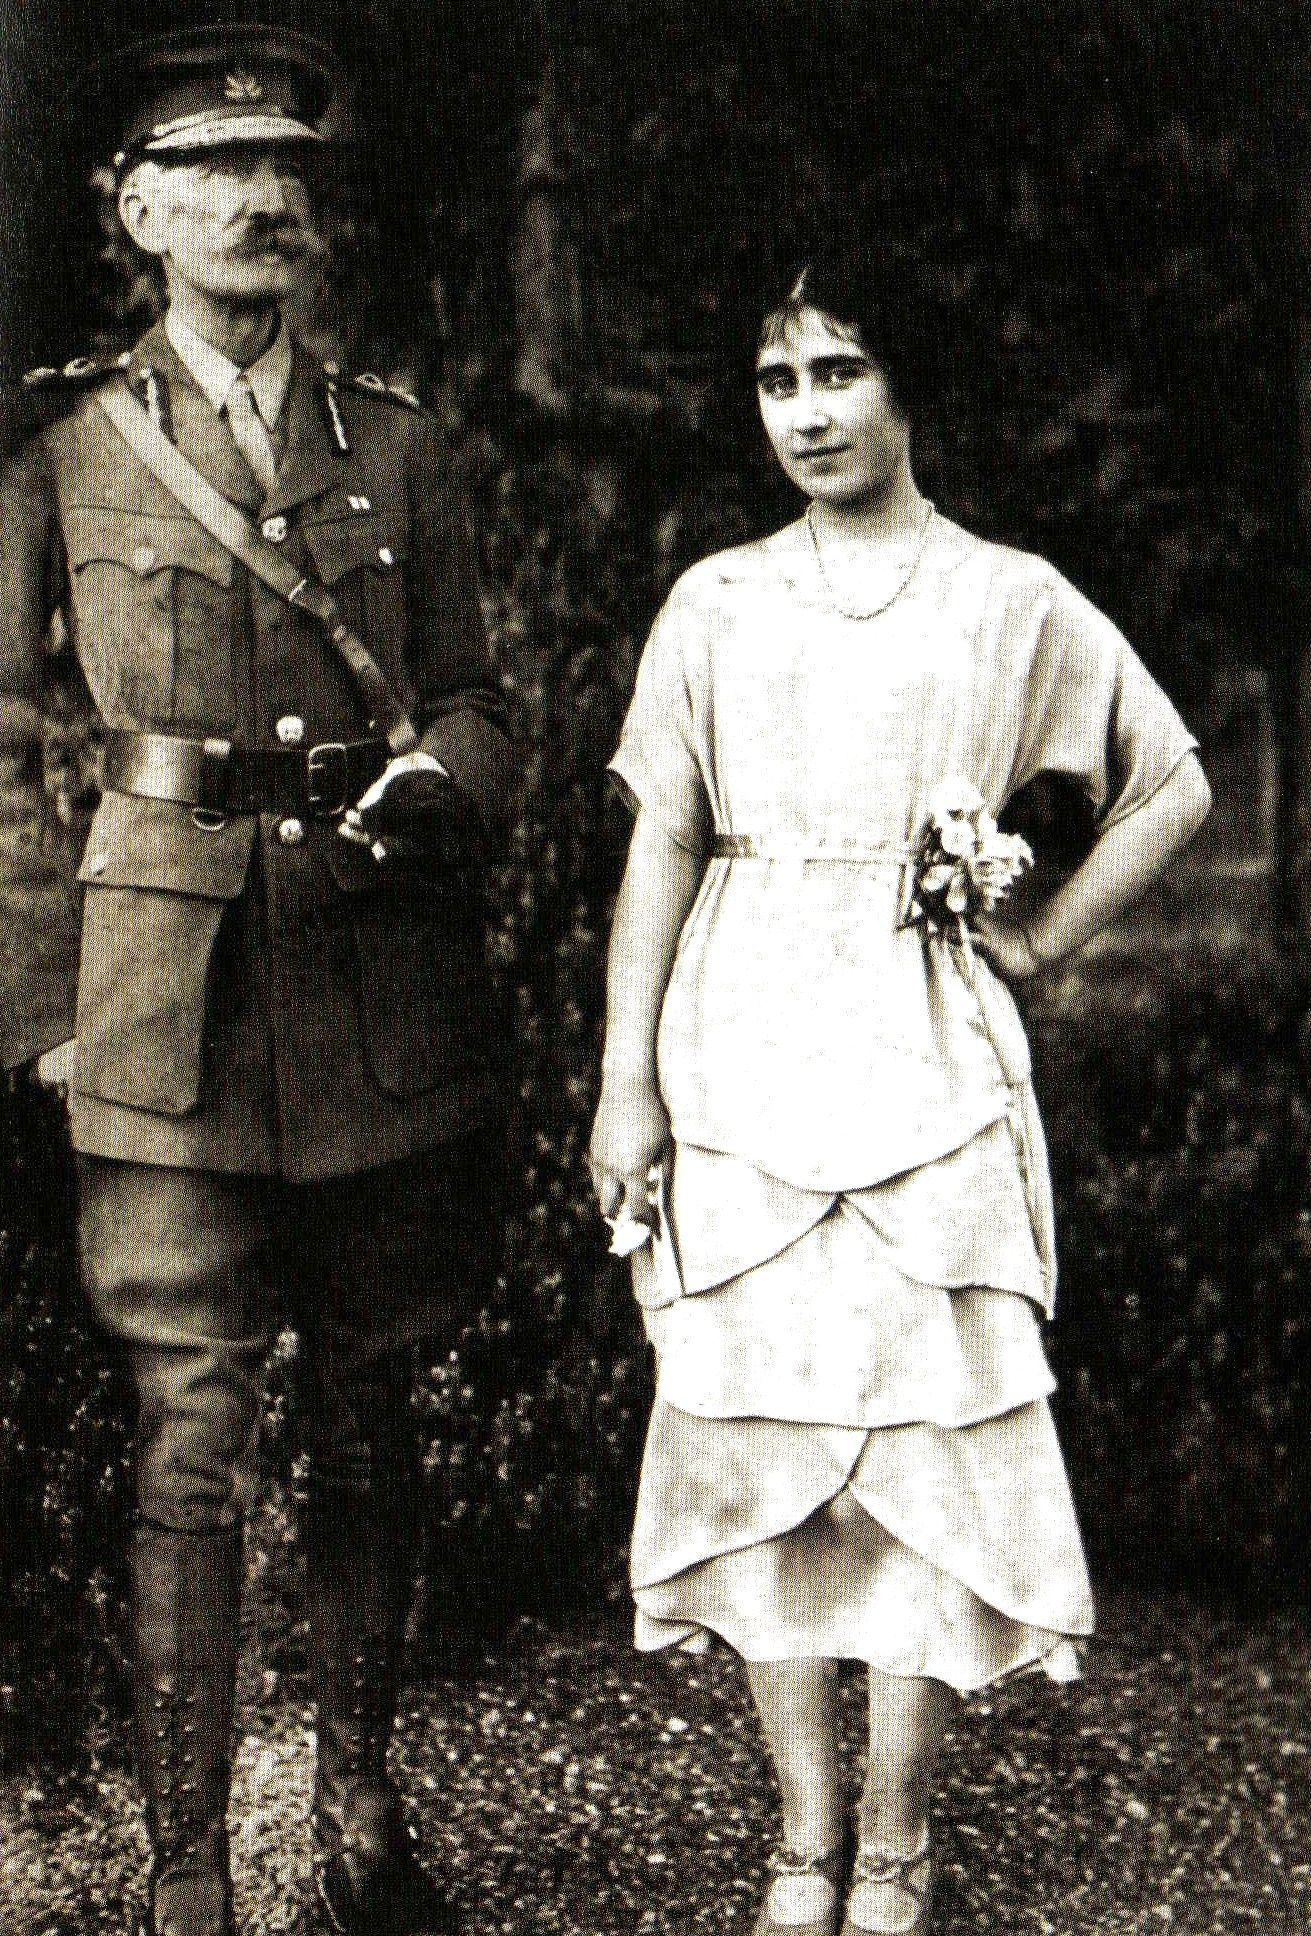 September 29 1921 The Queen Mother When She Was Elizabeth Bowes Lyon With Her Father The Earl Of Strathmore Queen Mother Queen Mum Queen Elizabeth